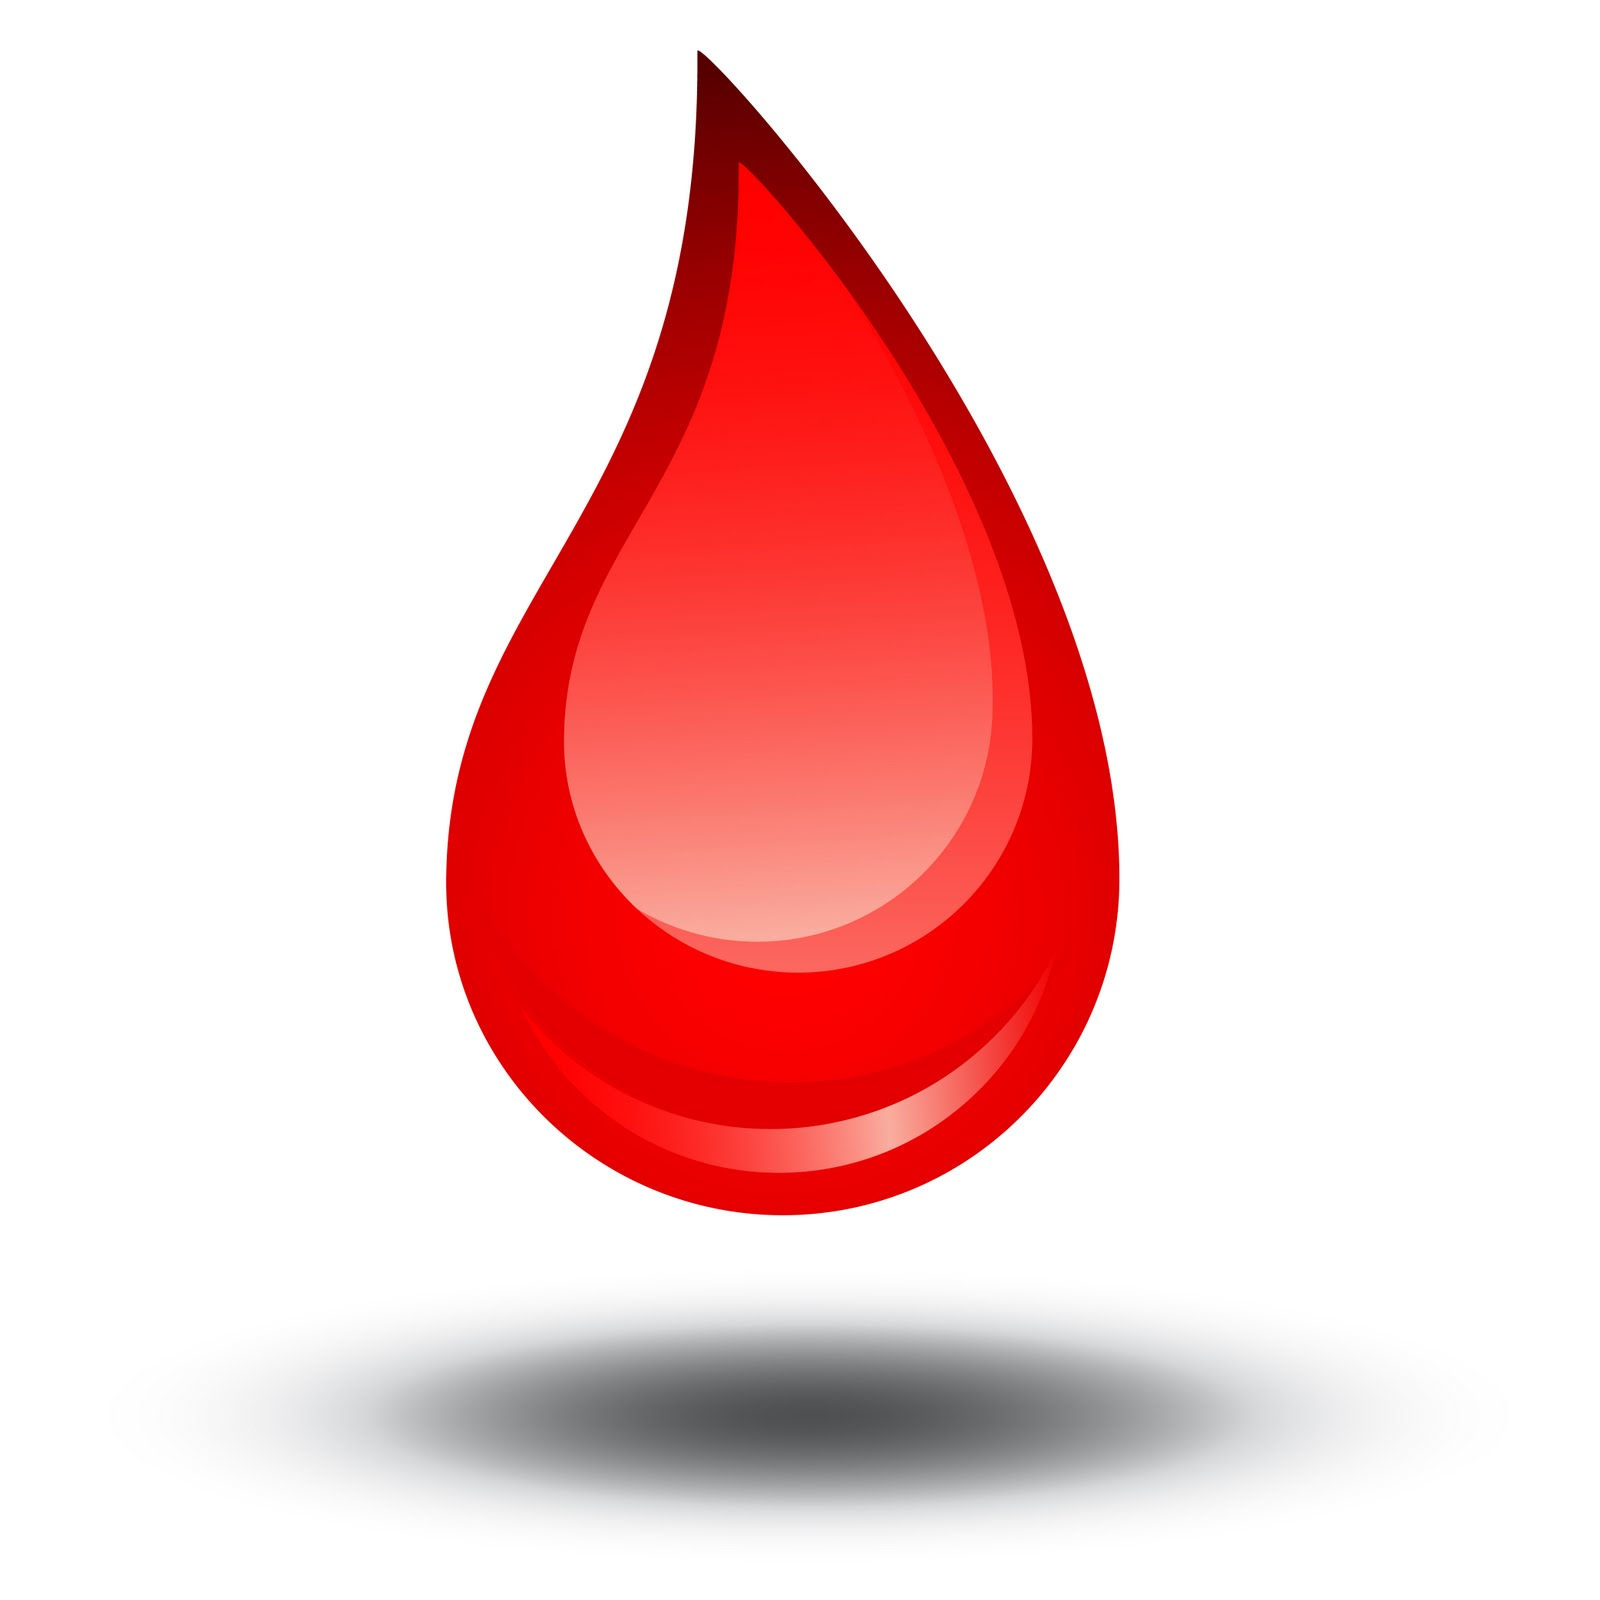 Blood Drop Clipart Images.